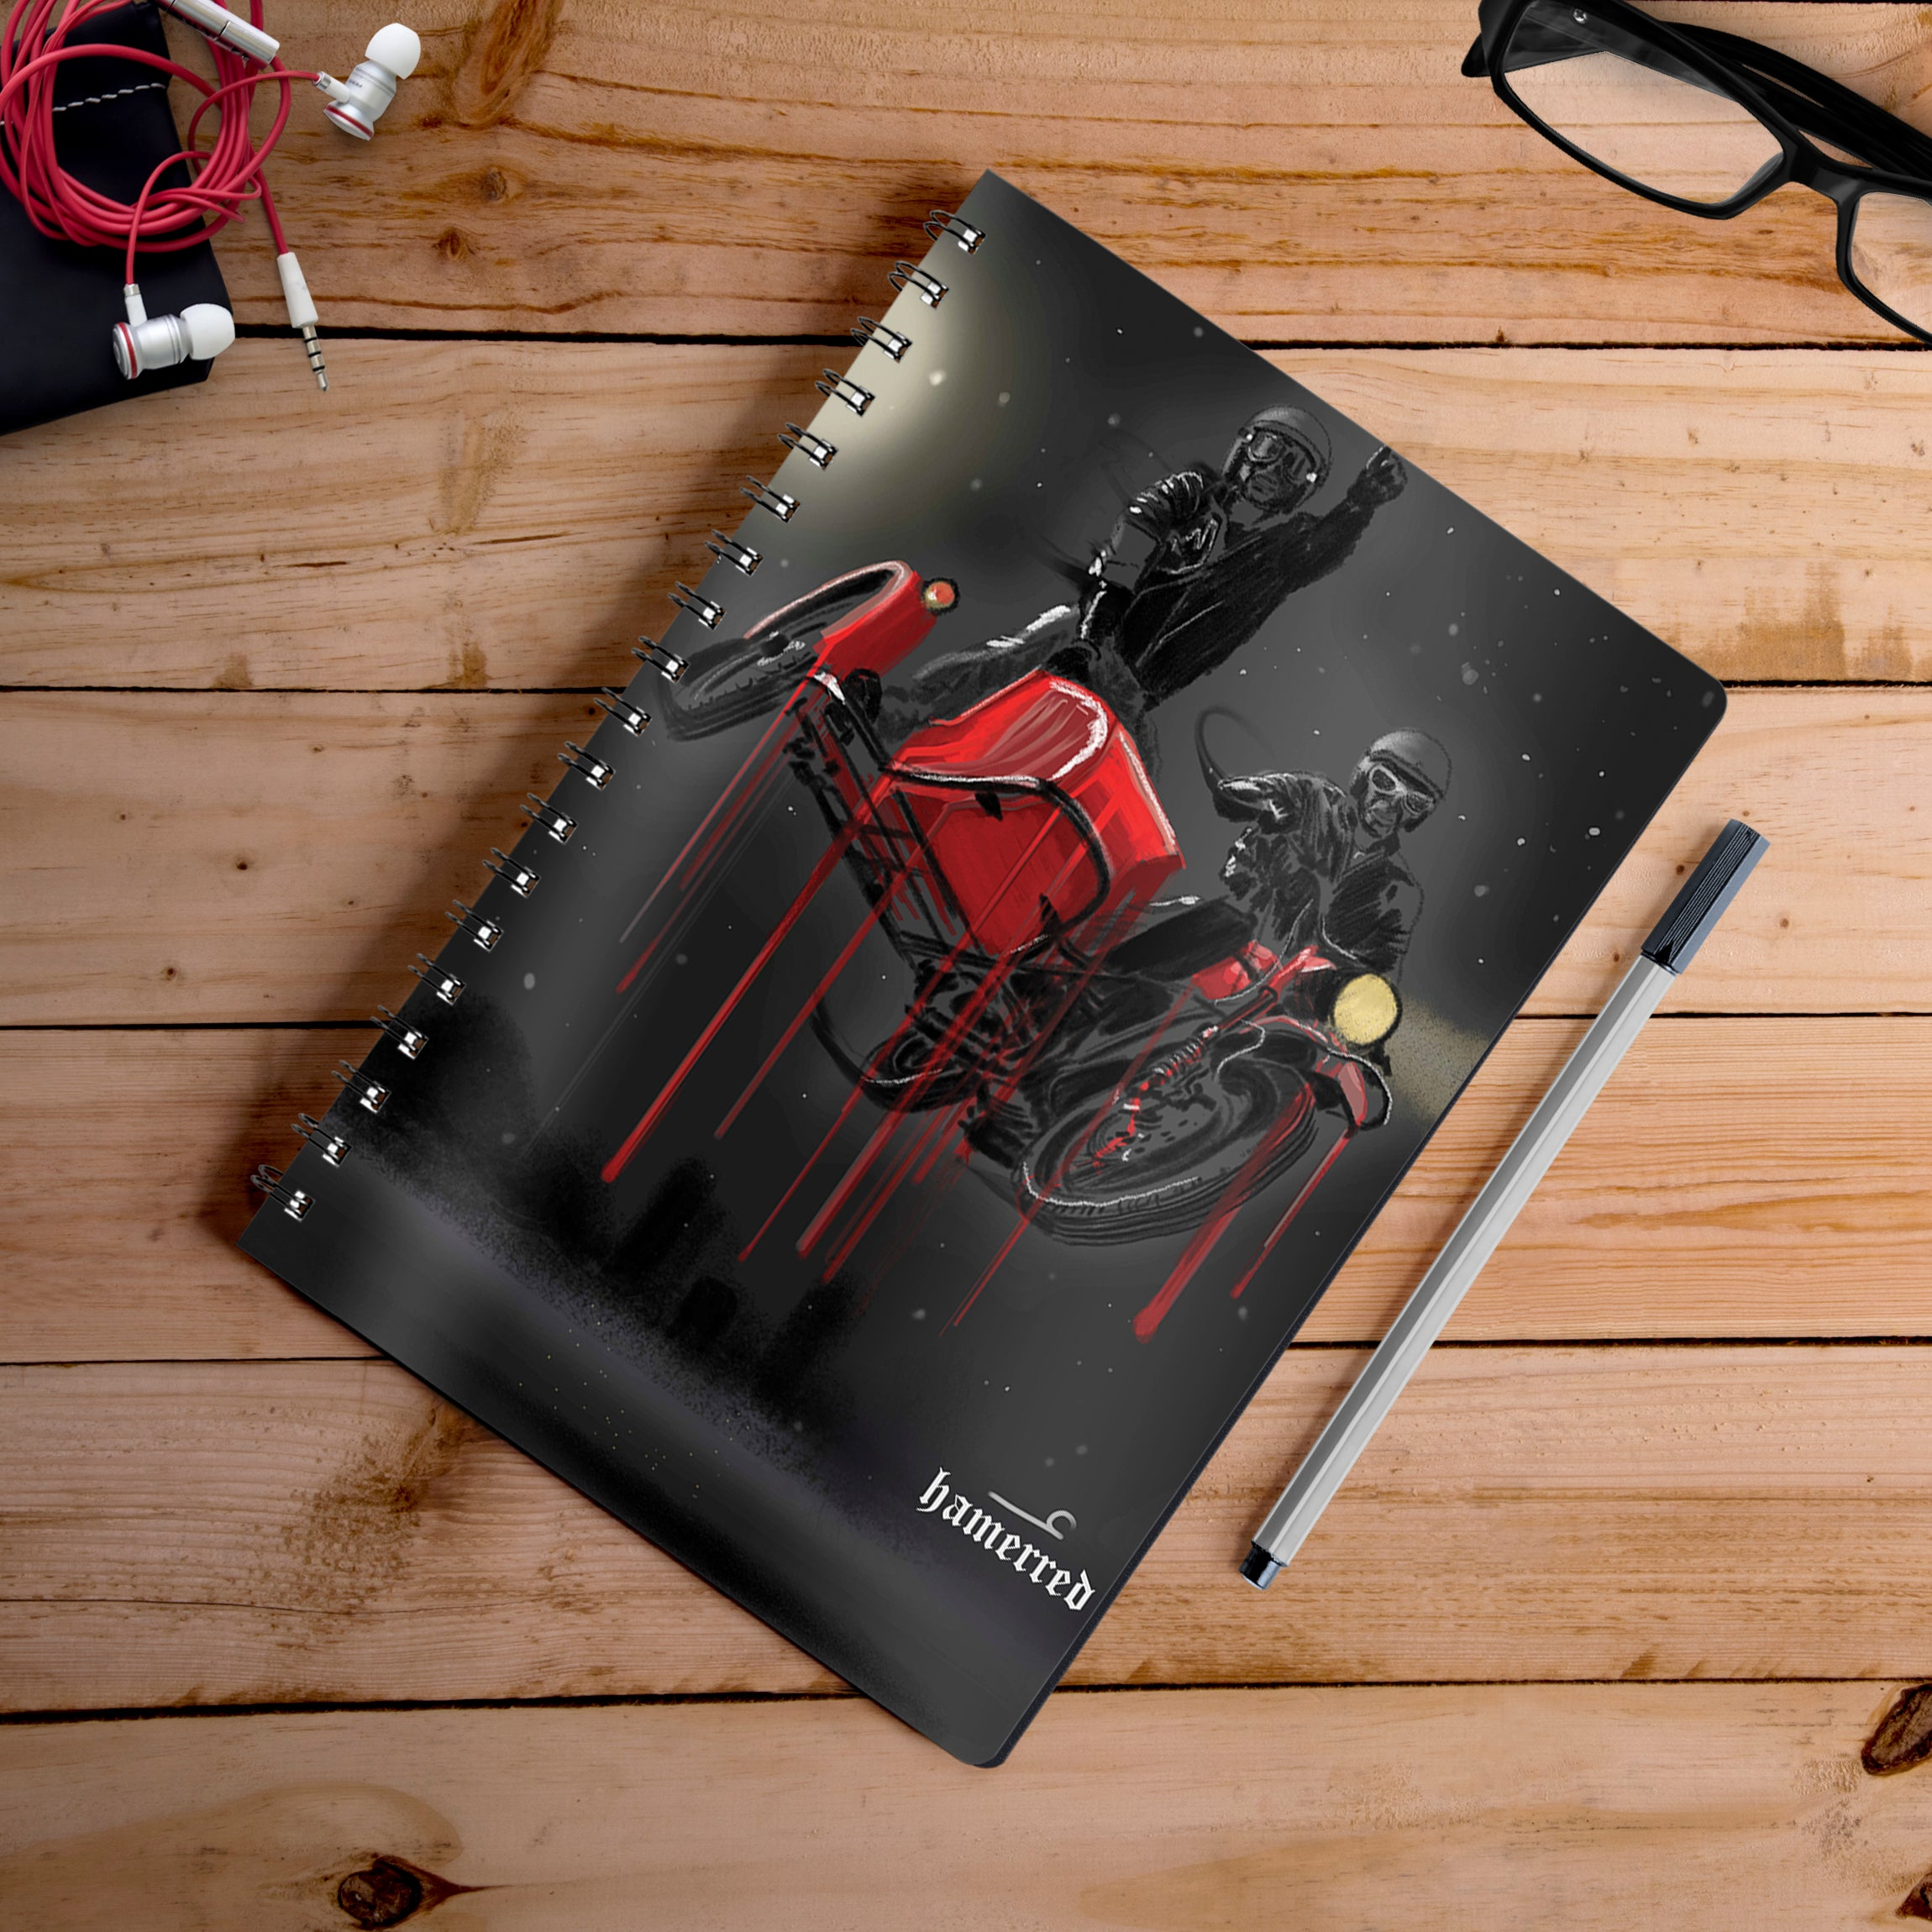 Buy-Into-The-Night-Artist-Hamerred49-Notebook | 100kmph